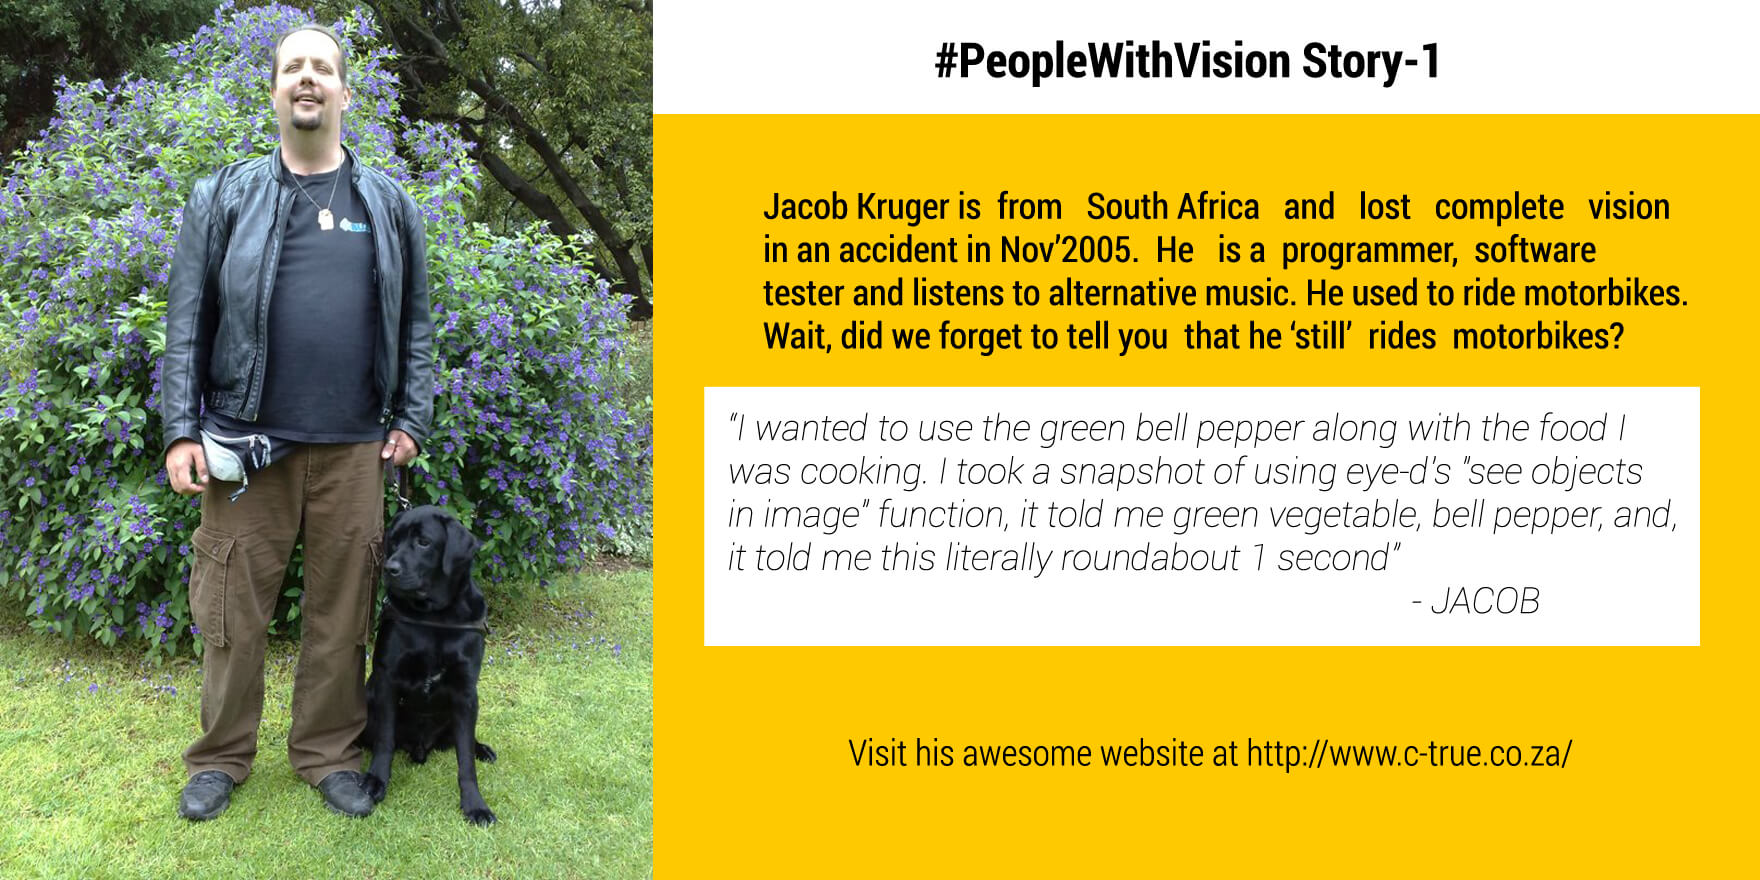 Picture shows Eye-D App user Jacob along with his guide dog on left, on the right is an instance how Jacob leveraged the Eye-D App's See Object feature to pick Green bell pepper for his dish